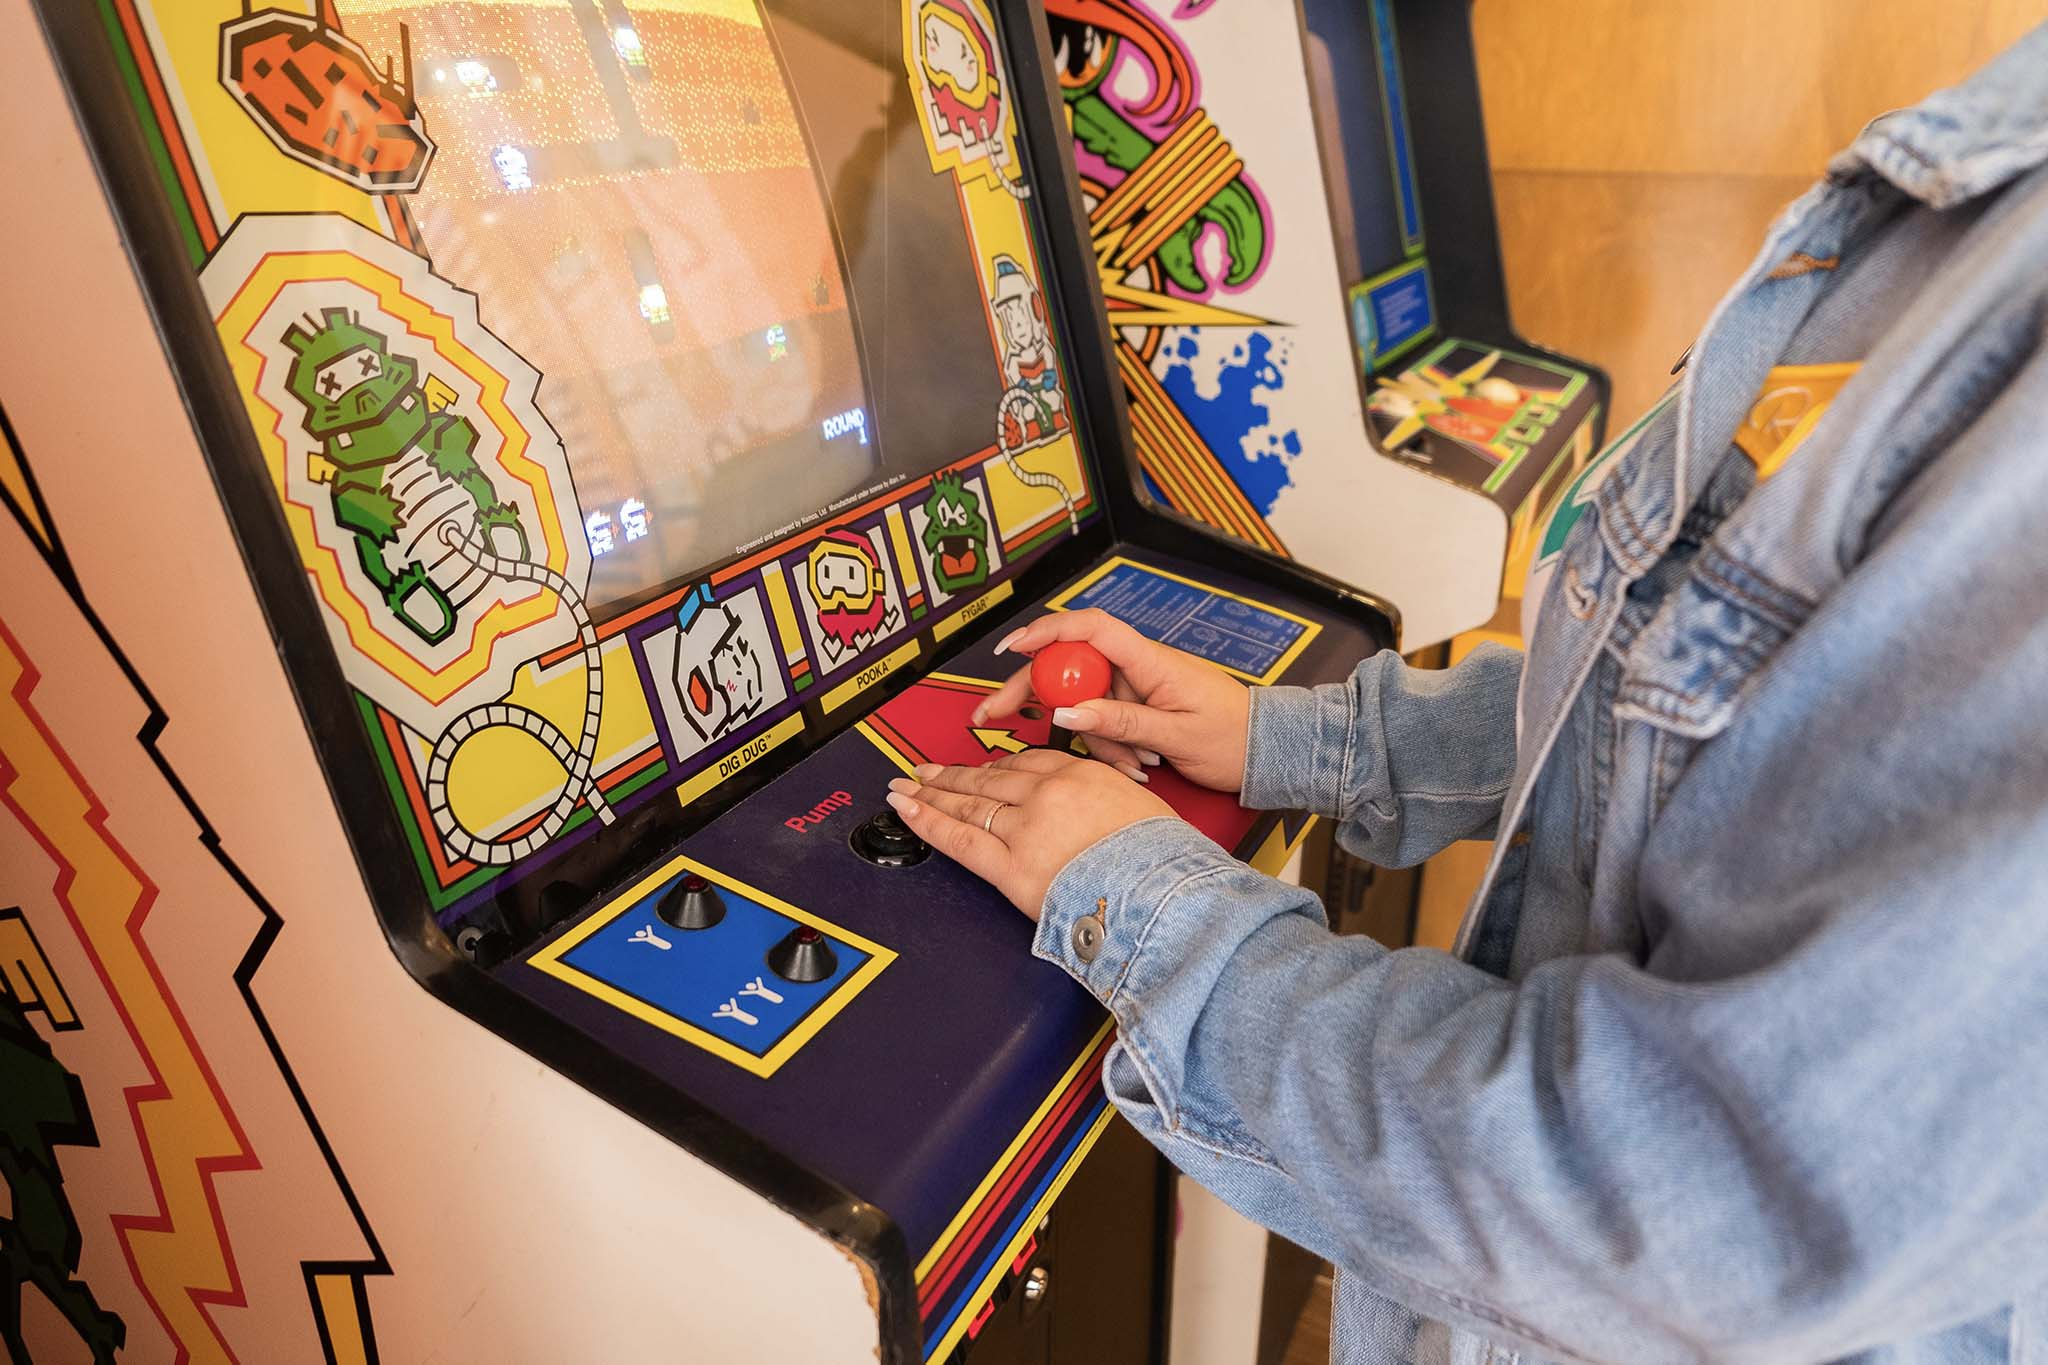 View of hands of a girl wearing a demin jacket playing an old school arcade game